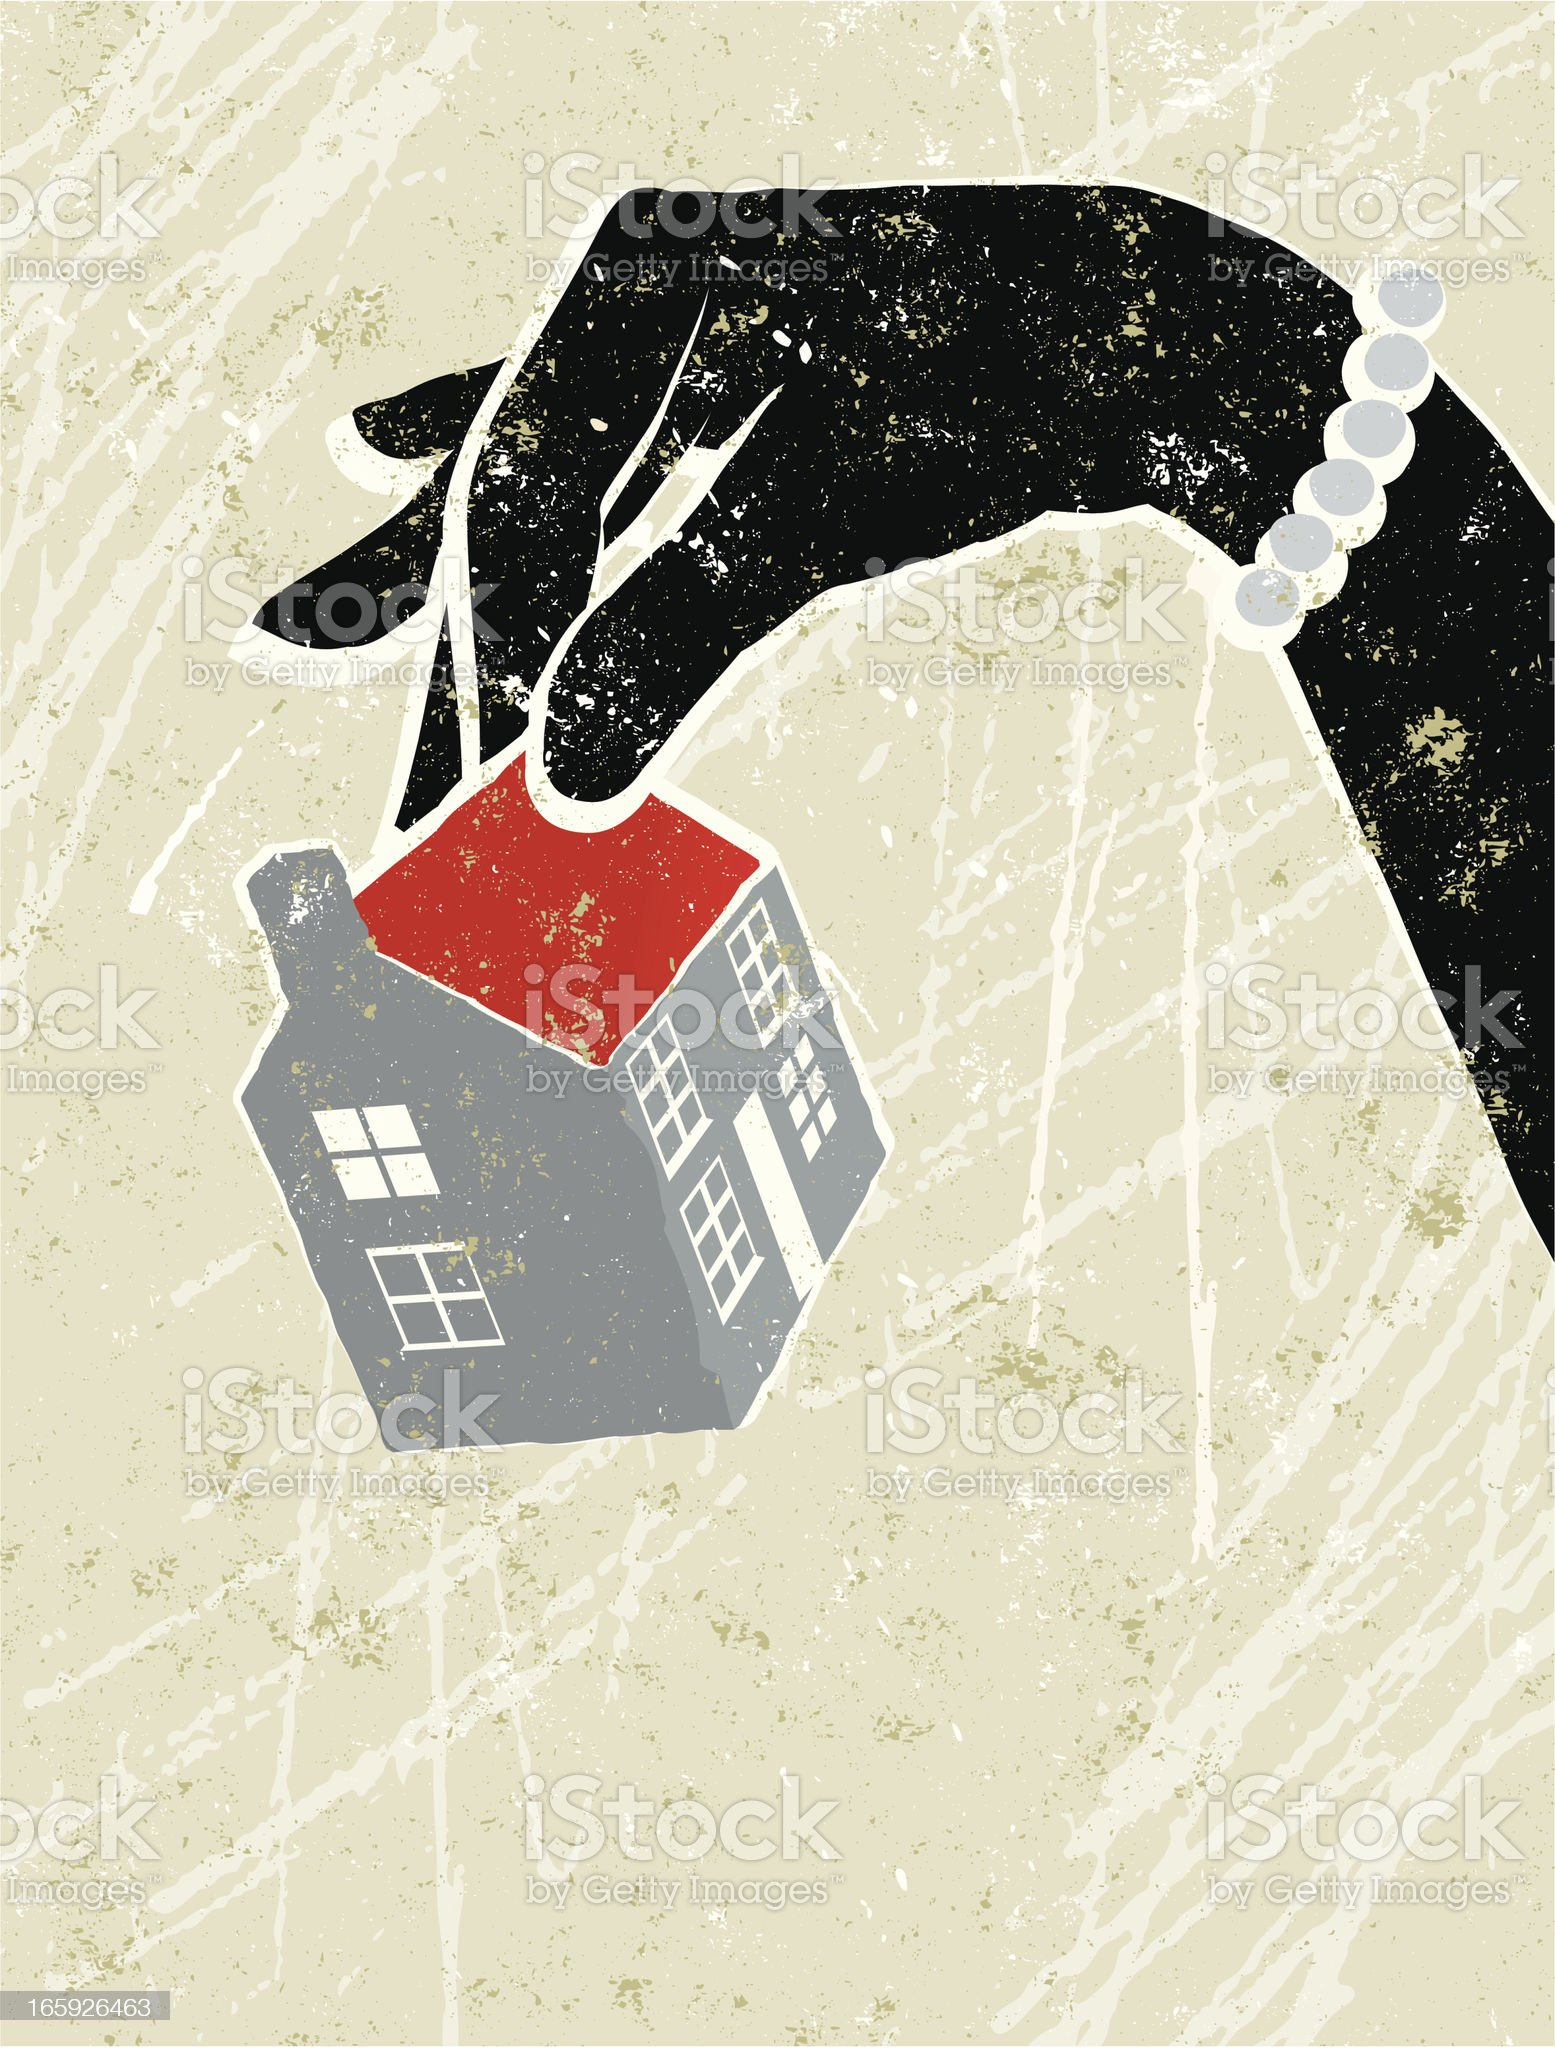 Glamorous Woman's Hand Holding a Tiny House royalty-free stock vector art